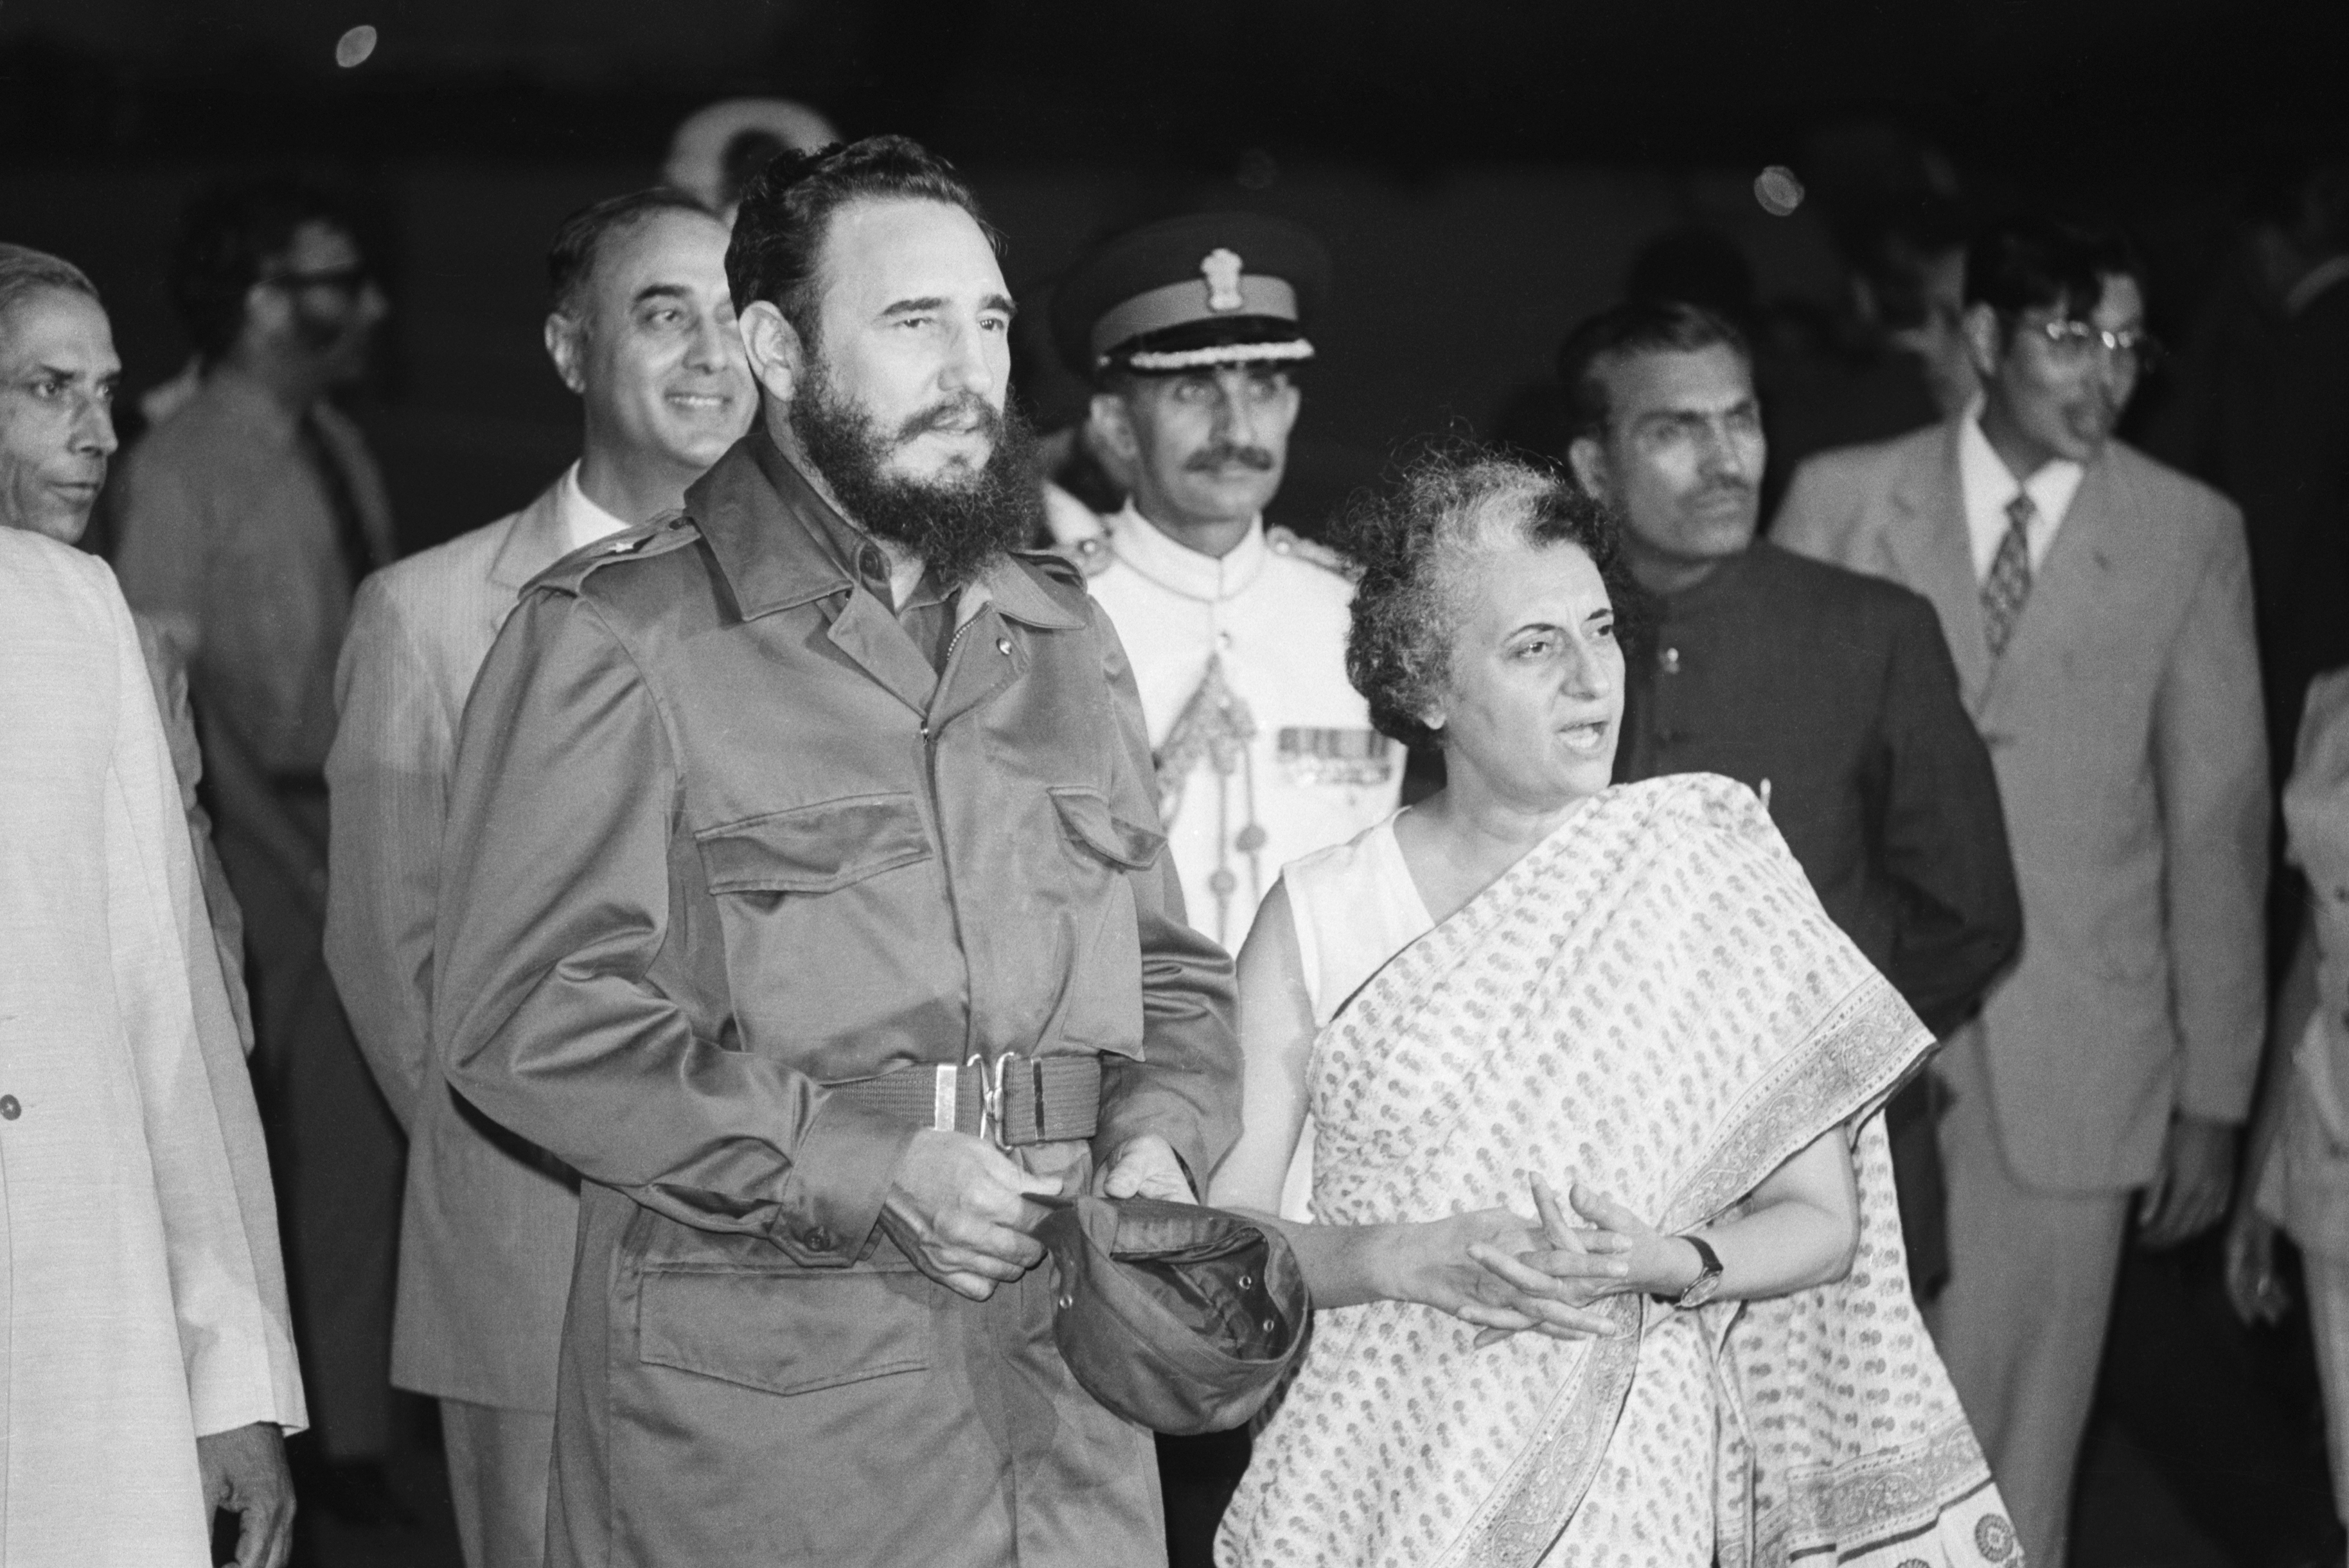 Fidel Castro's funeral on December 4, Cuba declares 9 days of mourning